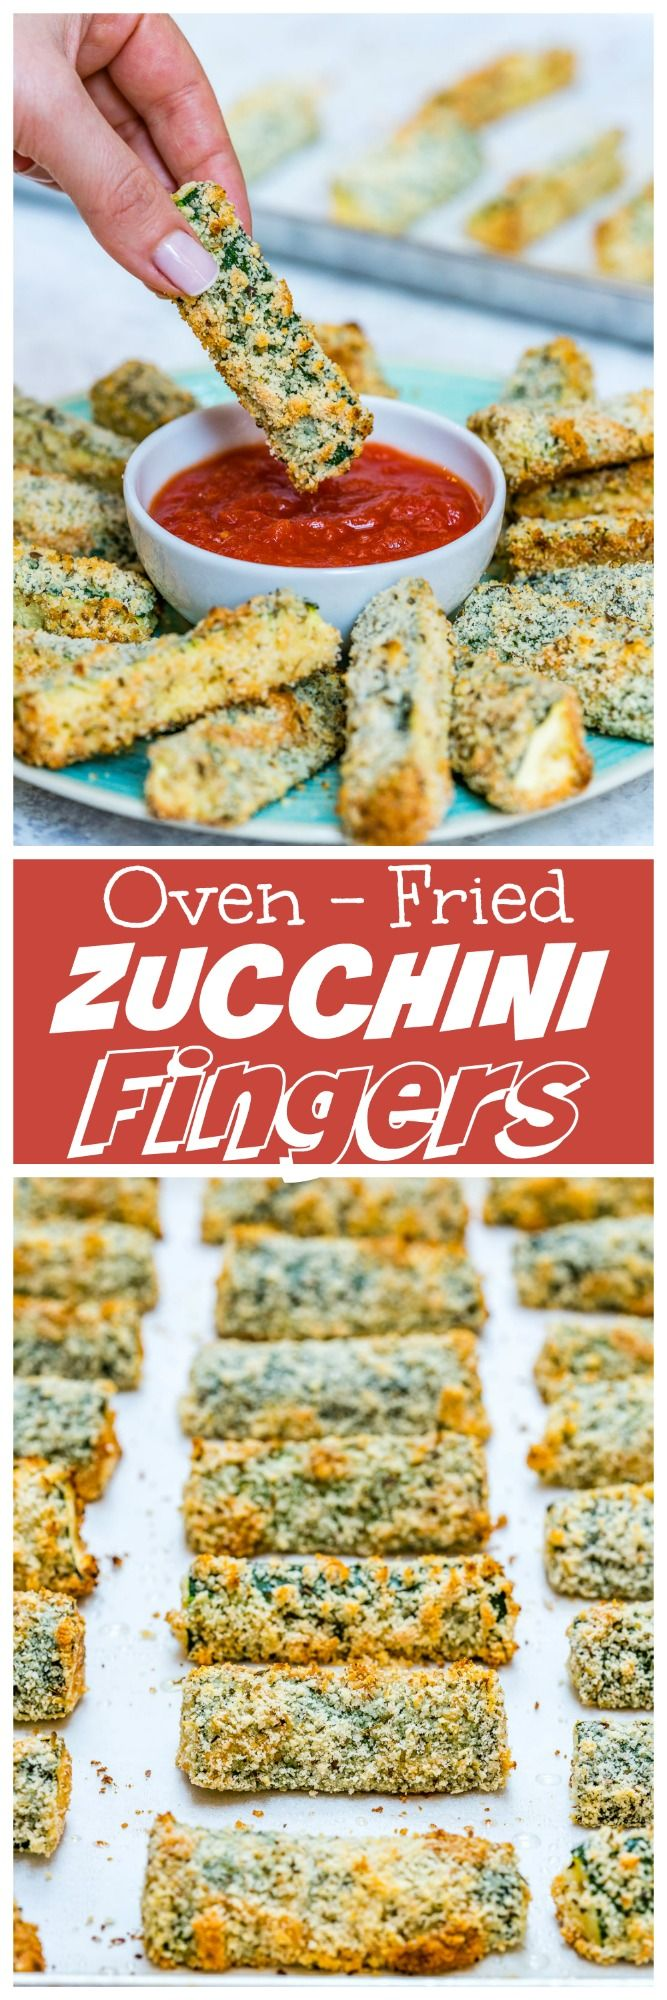 Oven Fried Zucchini Fingers are the PERFECT Clean Eating Party Food! - Clean Food Crush